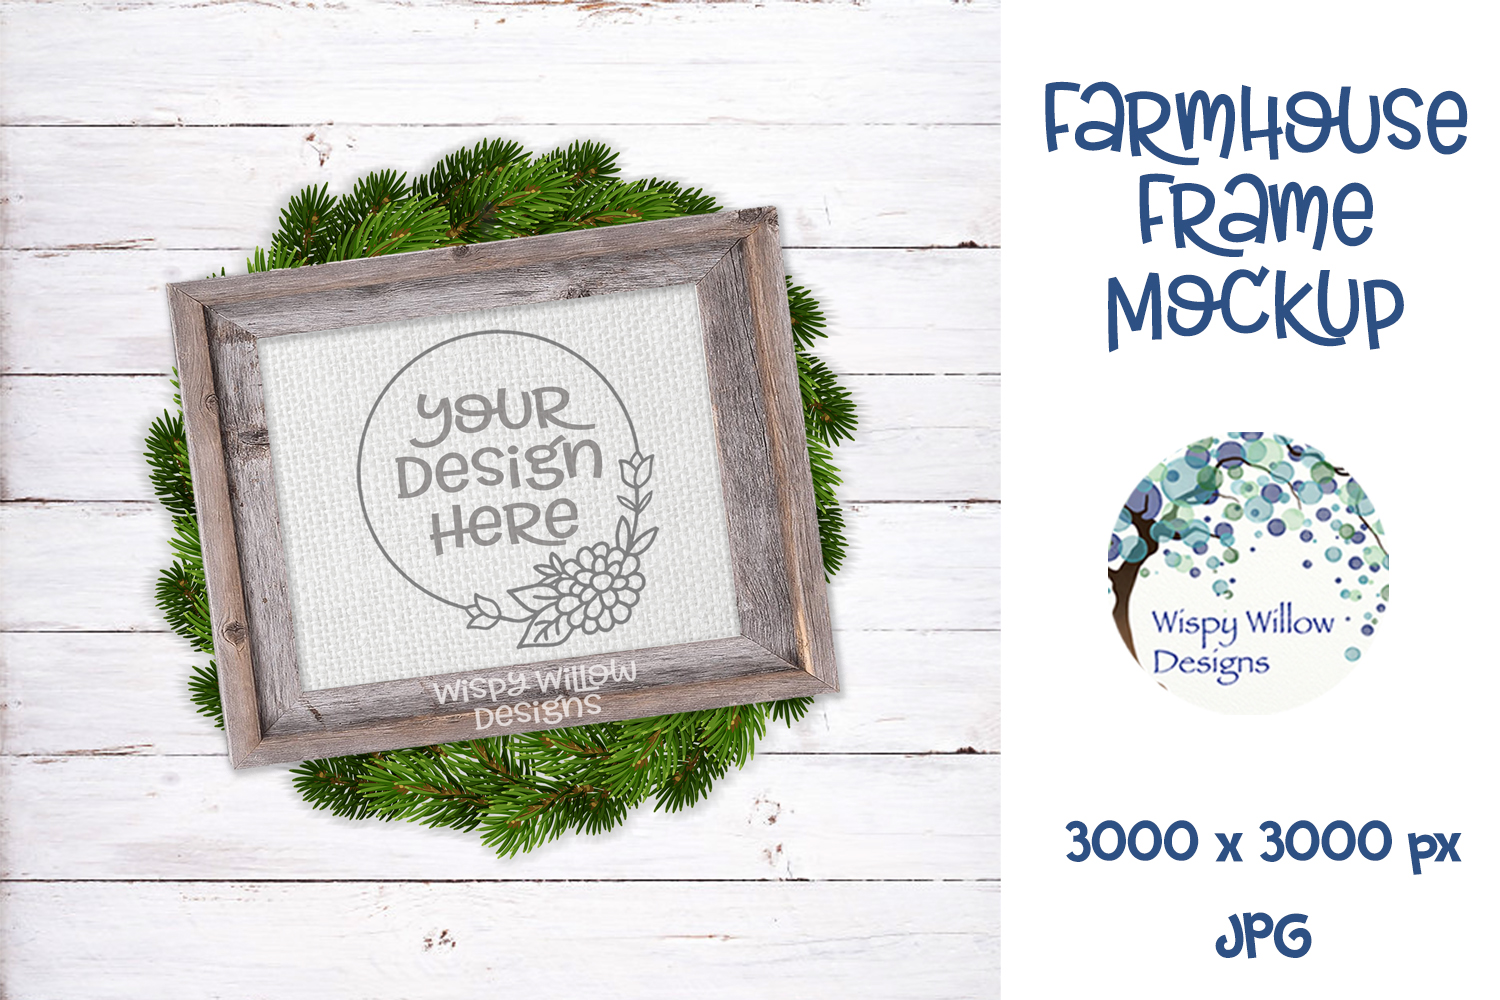 8x10 Horizontal Farmhouse Frame and Wreath Mockup example image 1